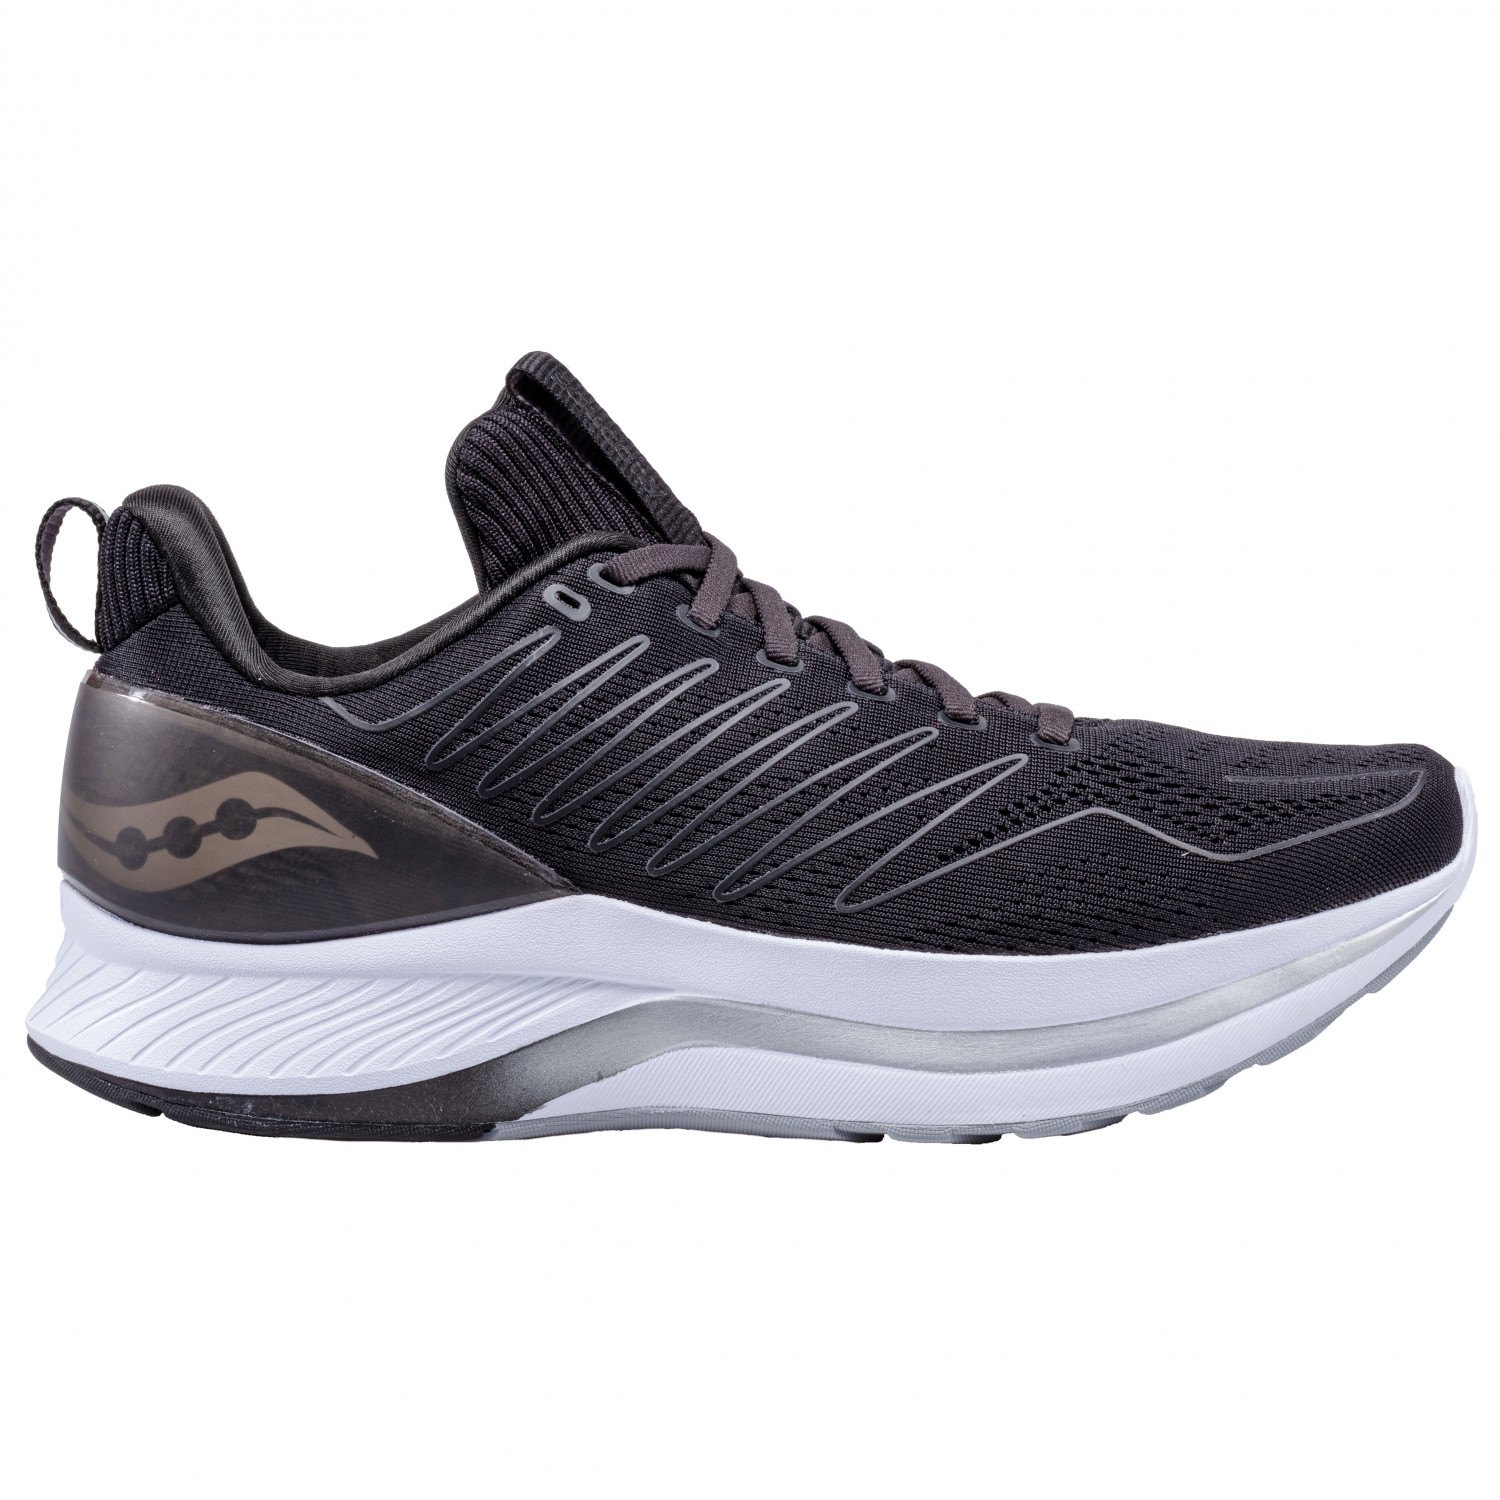 Saucony Endorphin Shift - Running shoes